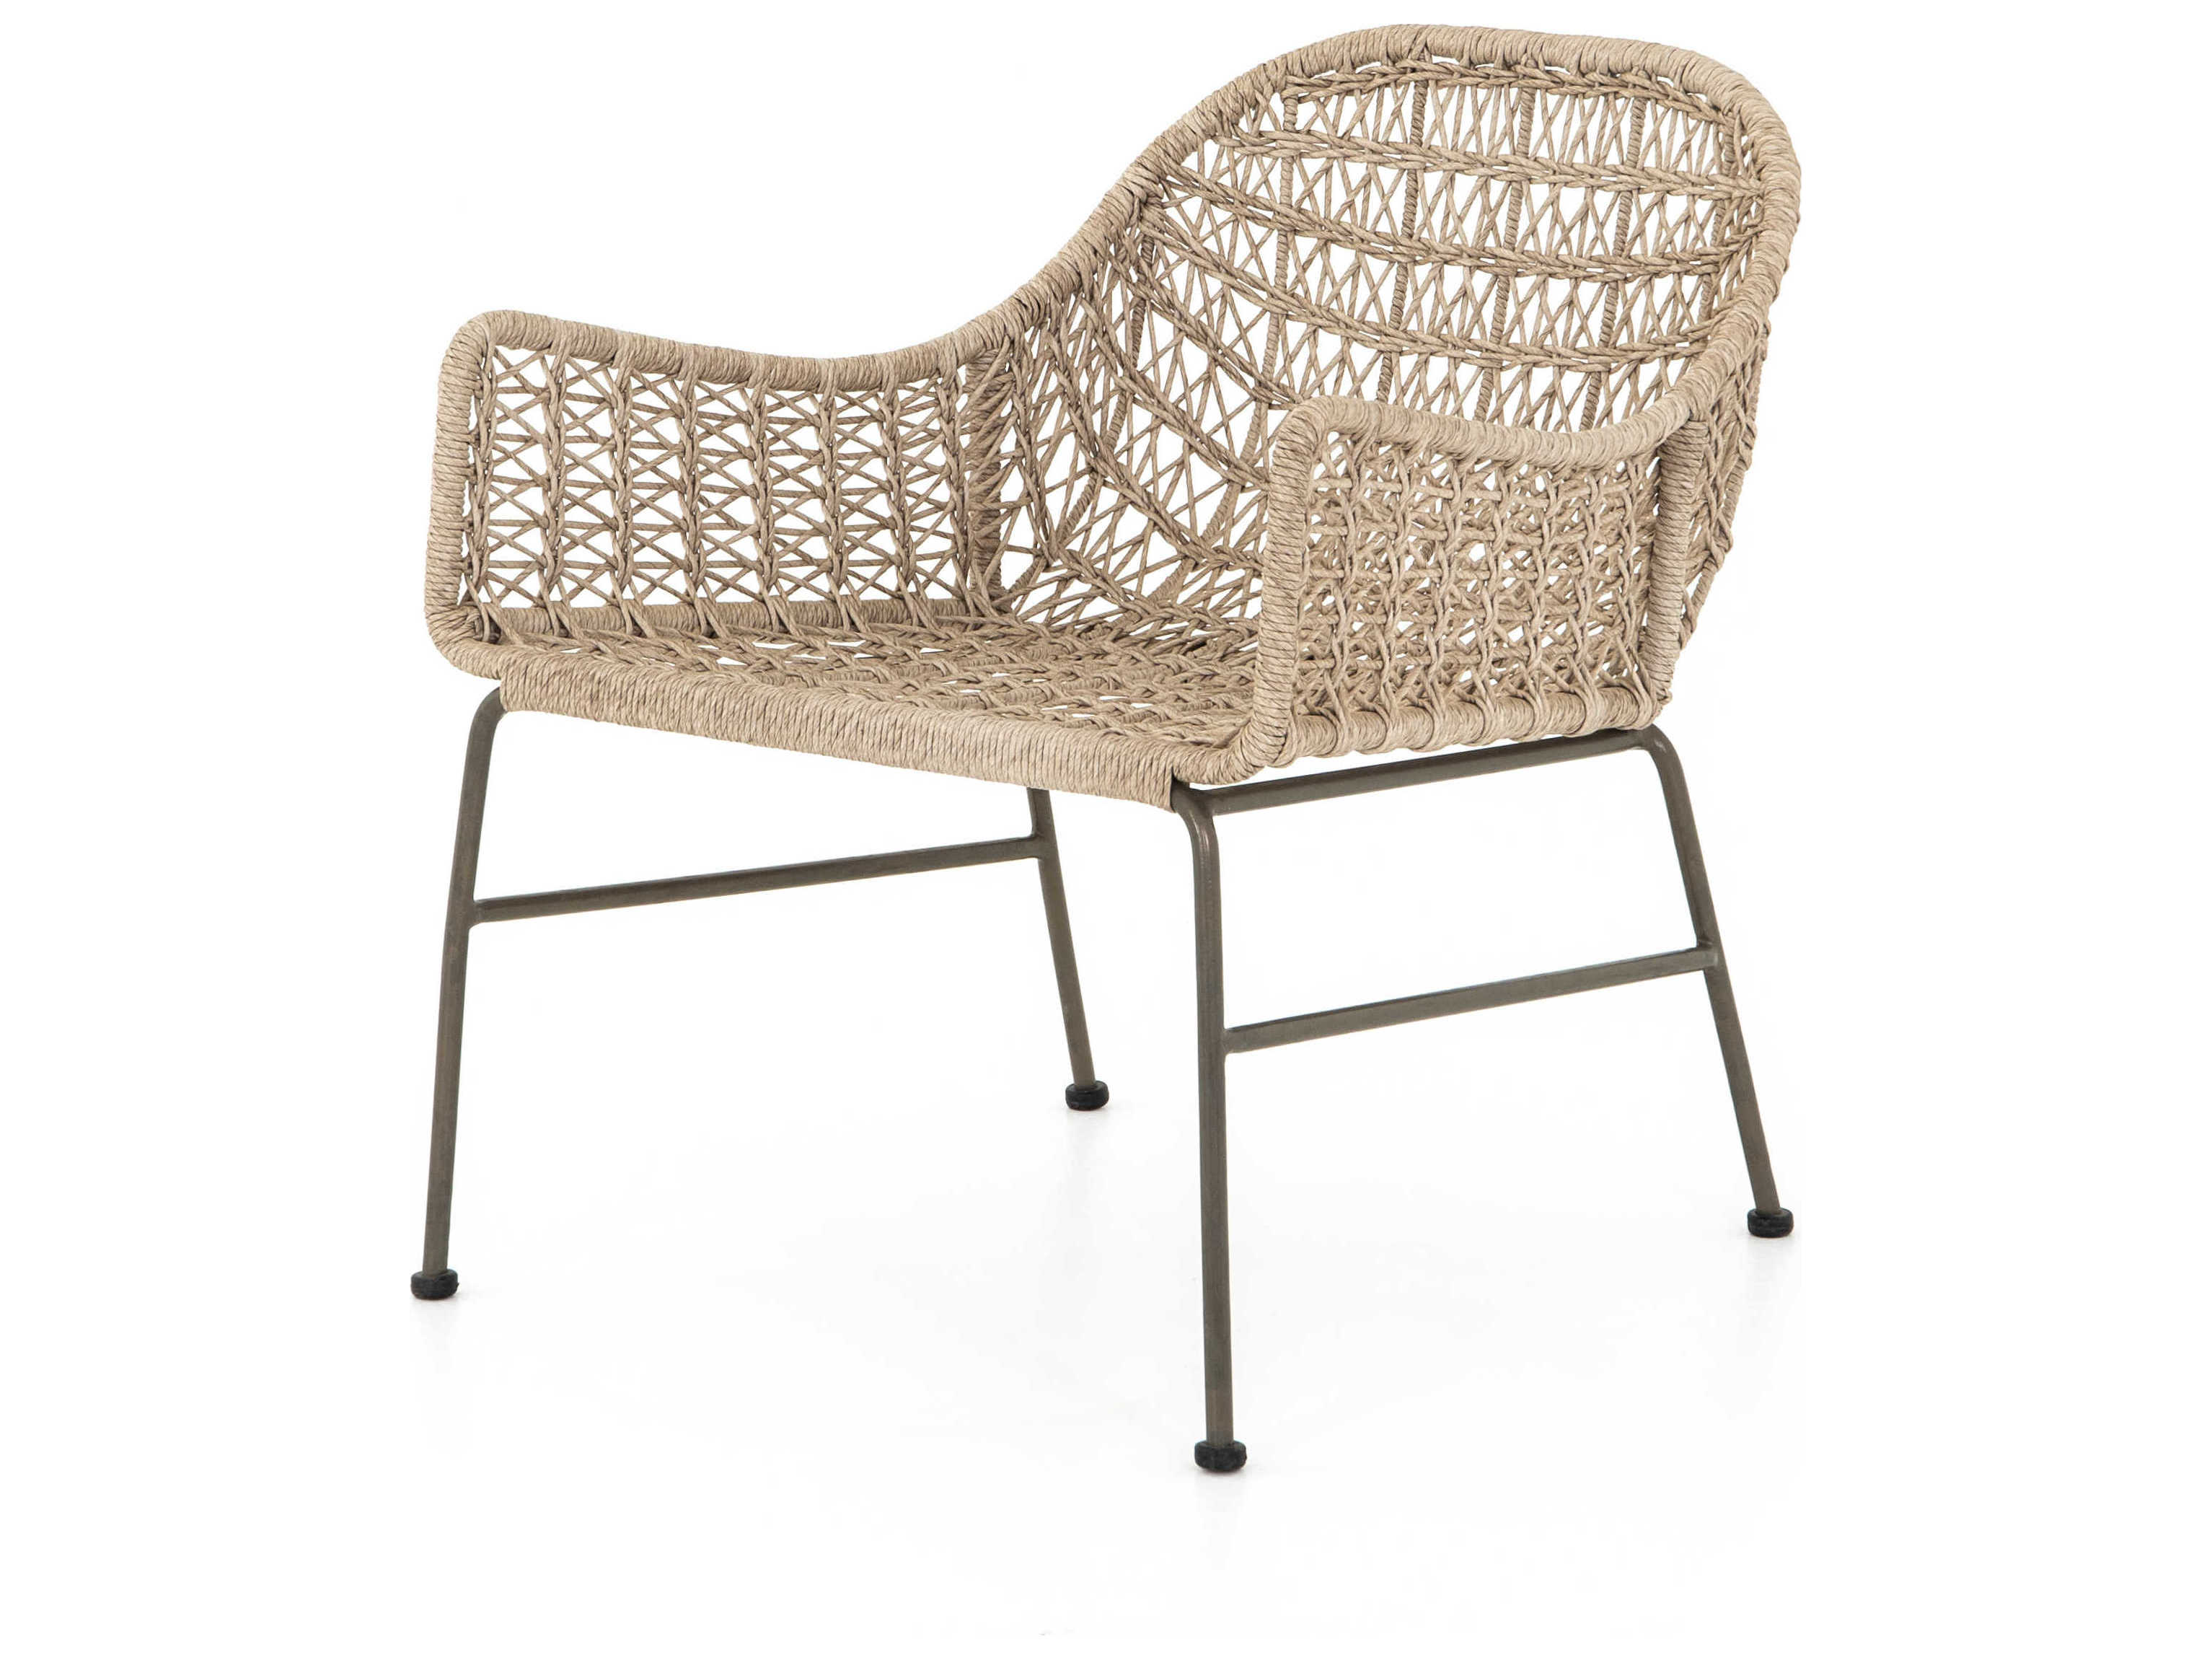 Four Hands Outdoor Grass Roots Bronze Vintage White Wrought Iron Wicker Lounge Chair Fhojlan138a